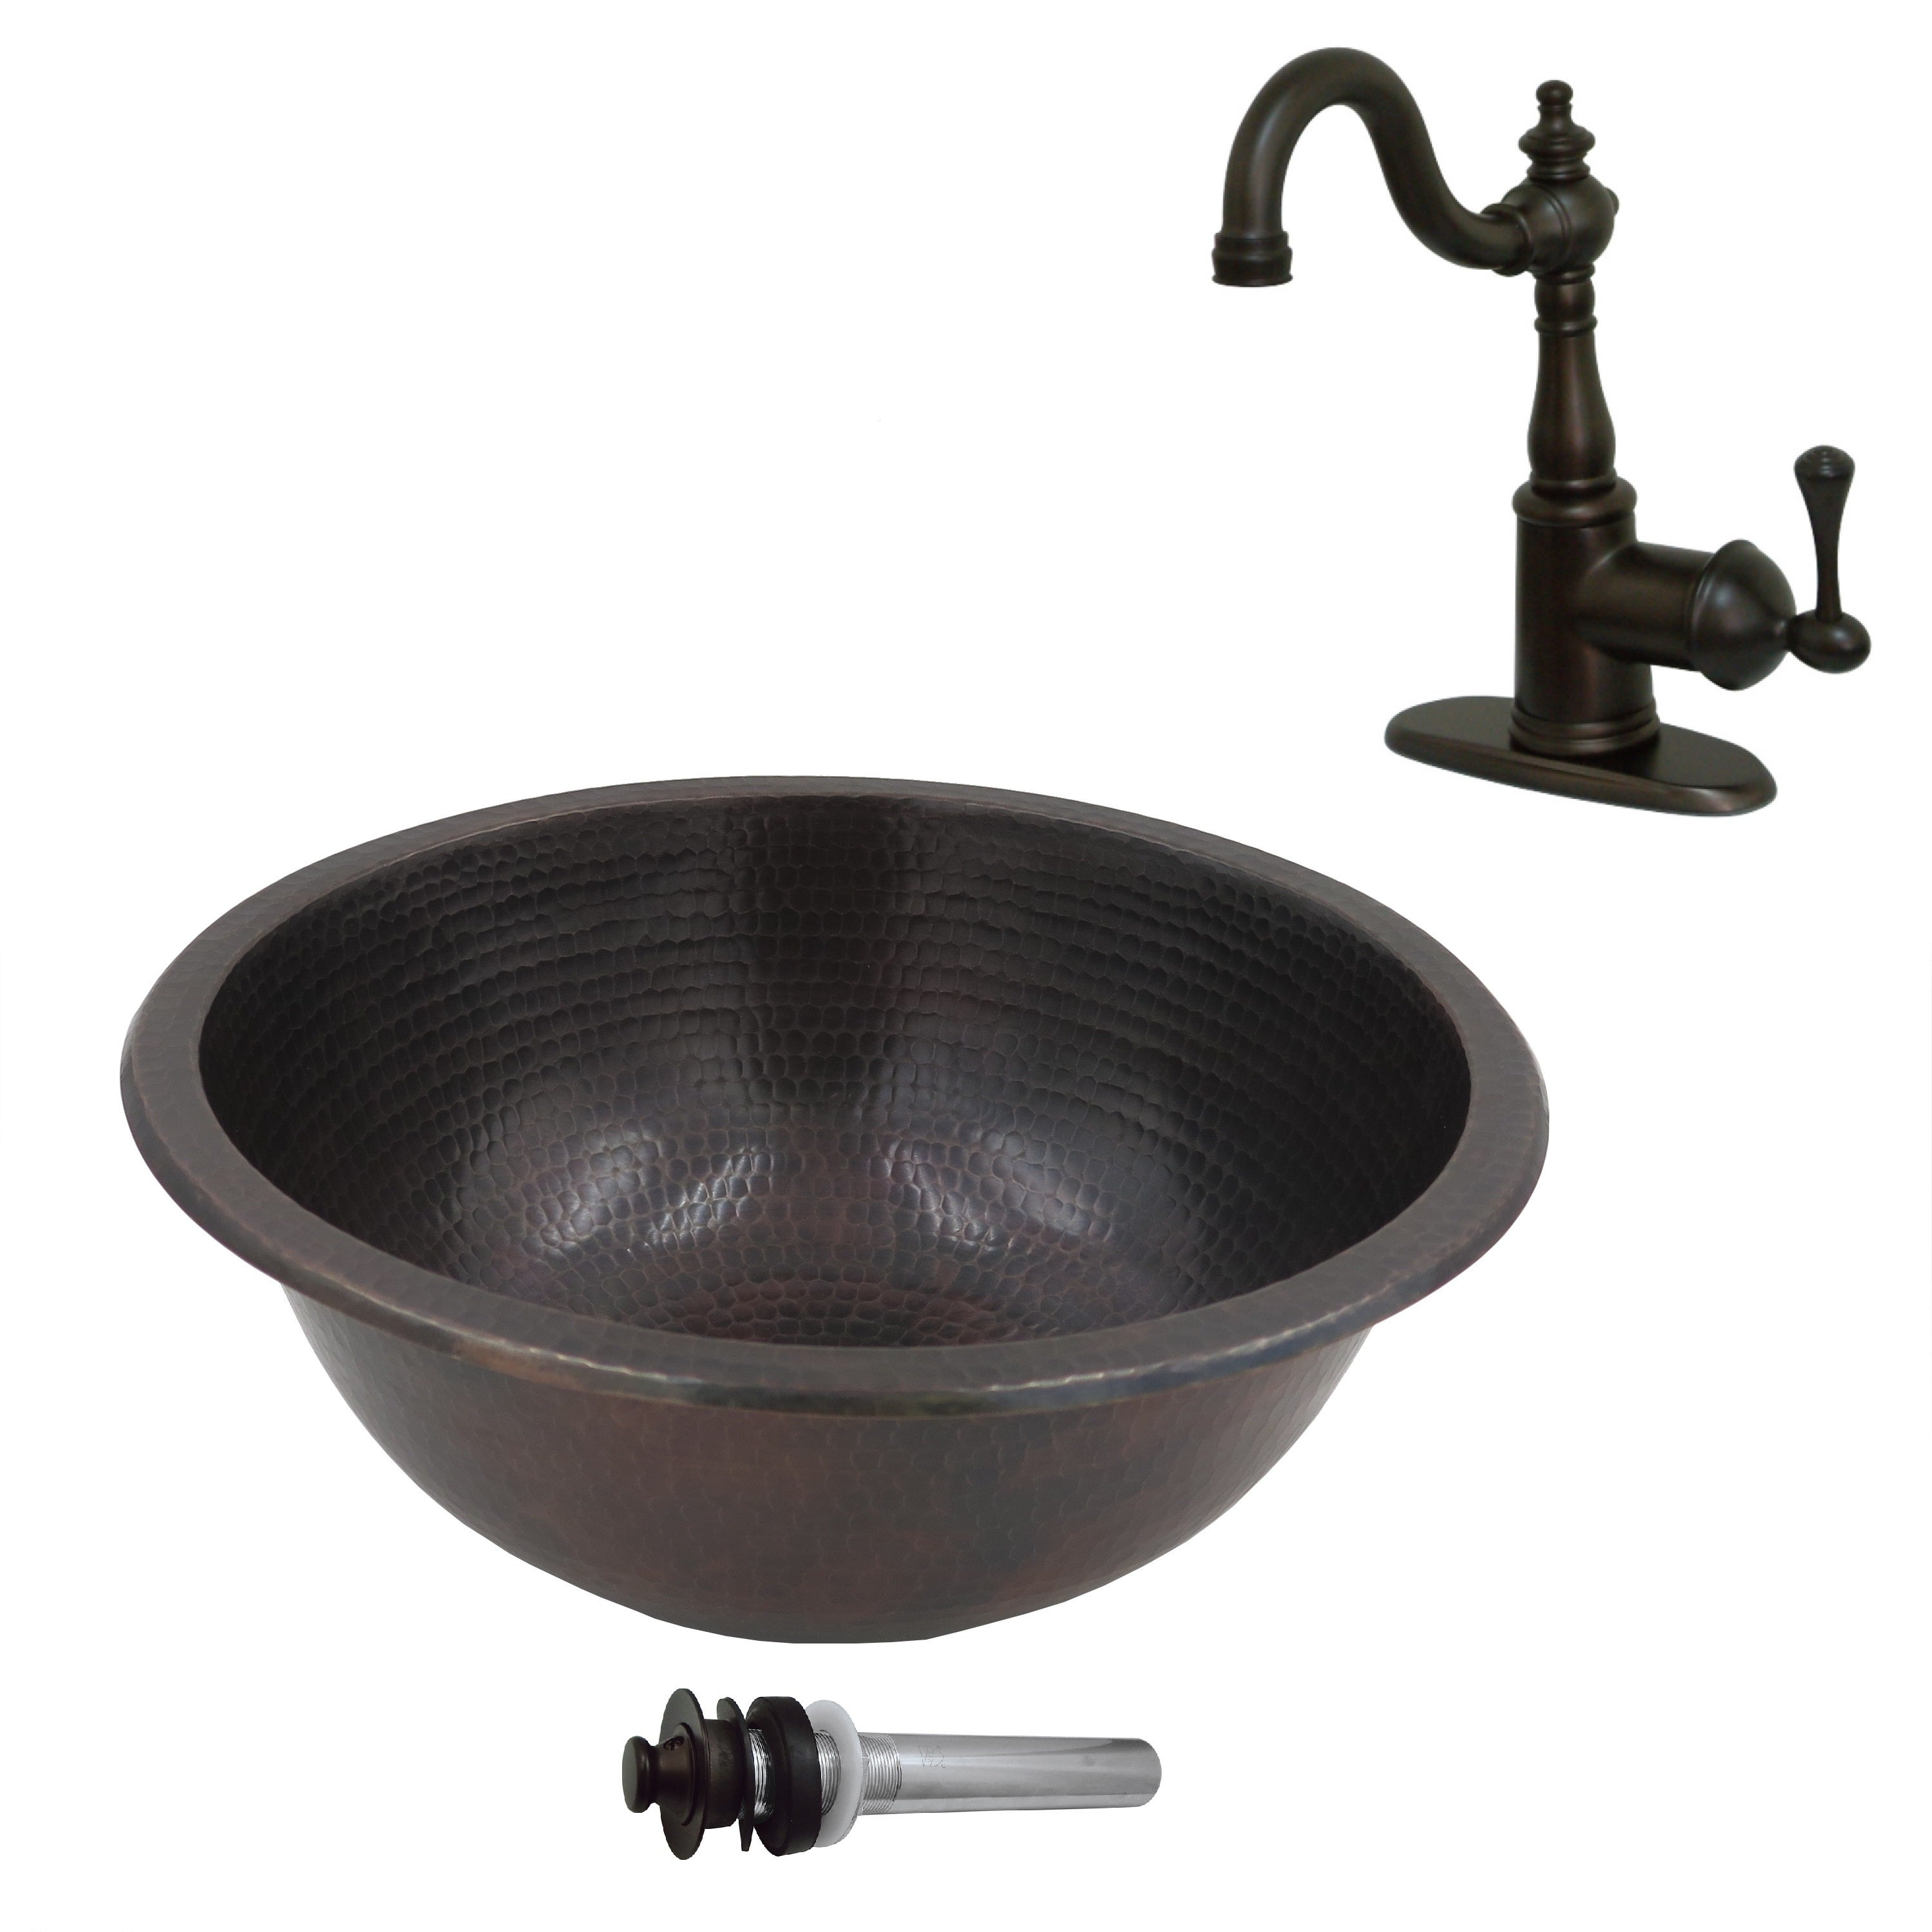 Shop Unikwities 13.5X5 Copper Sink with Centerset Faucet and Drain ...